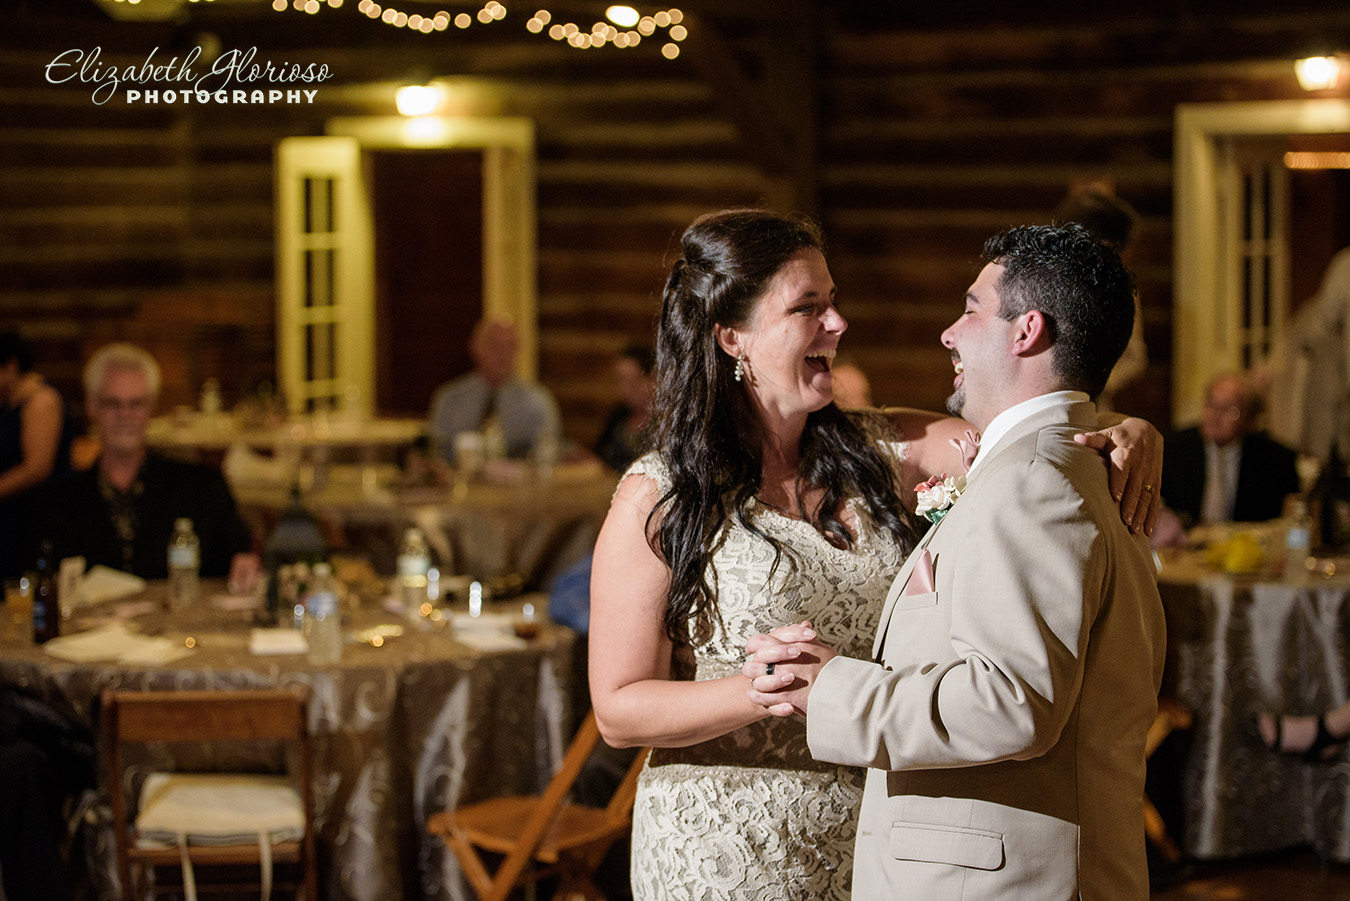 Vermilion_wedding_Glorioso Photography_1045